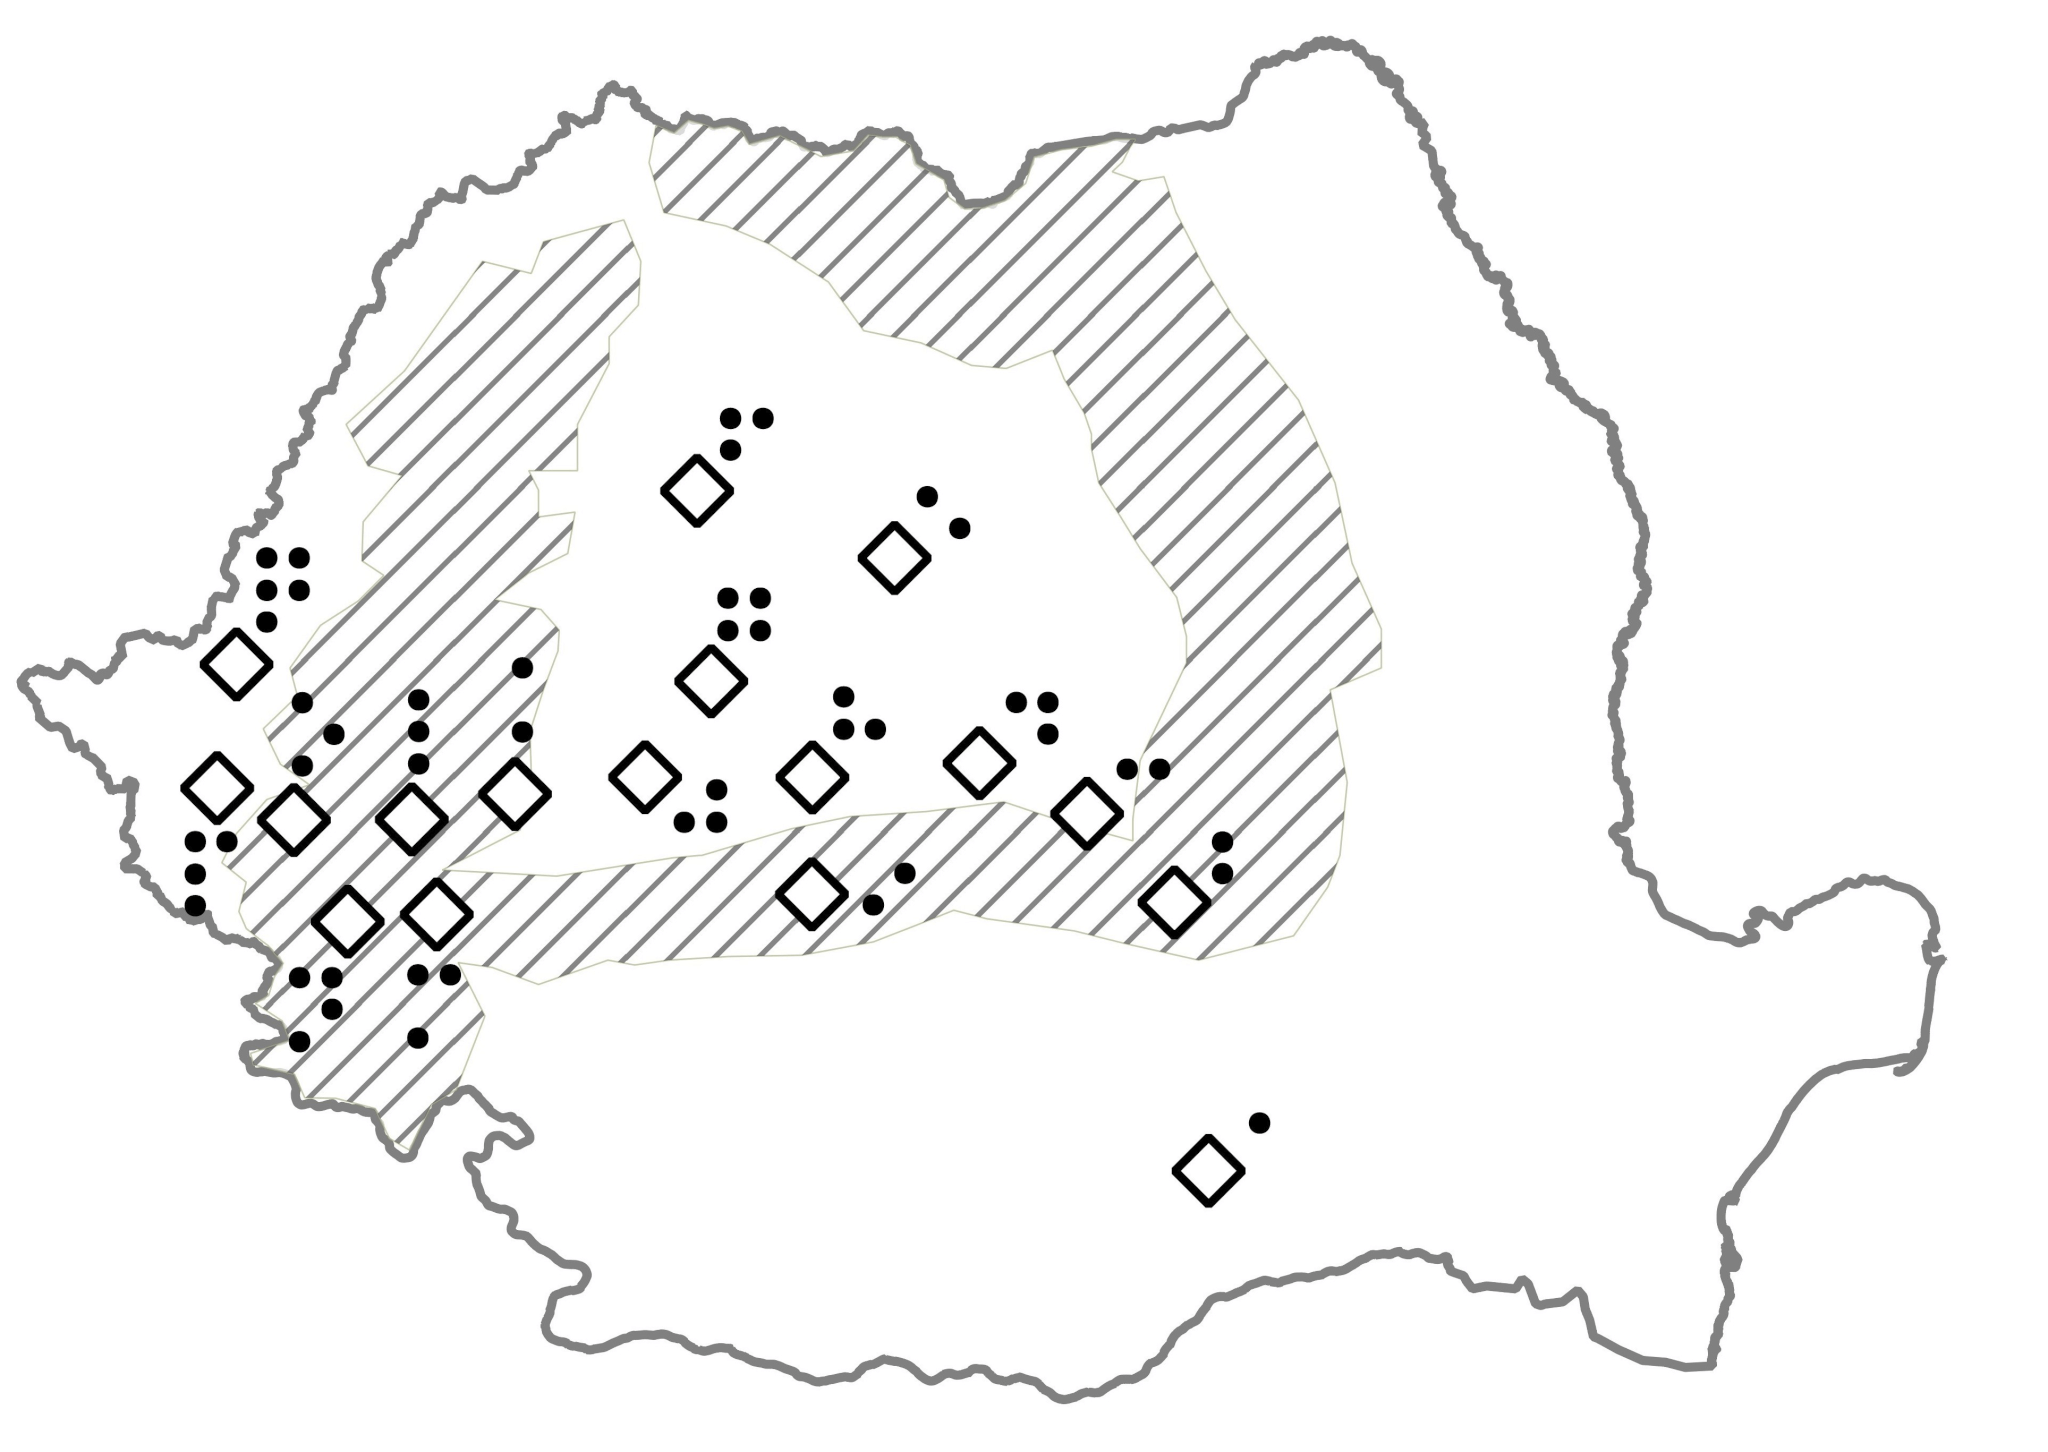 map of the cities where riots took place in december 1989